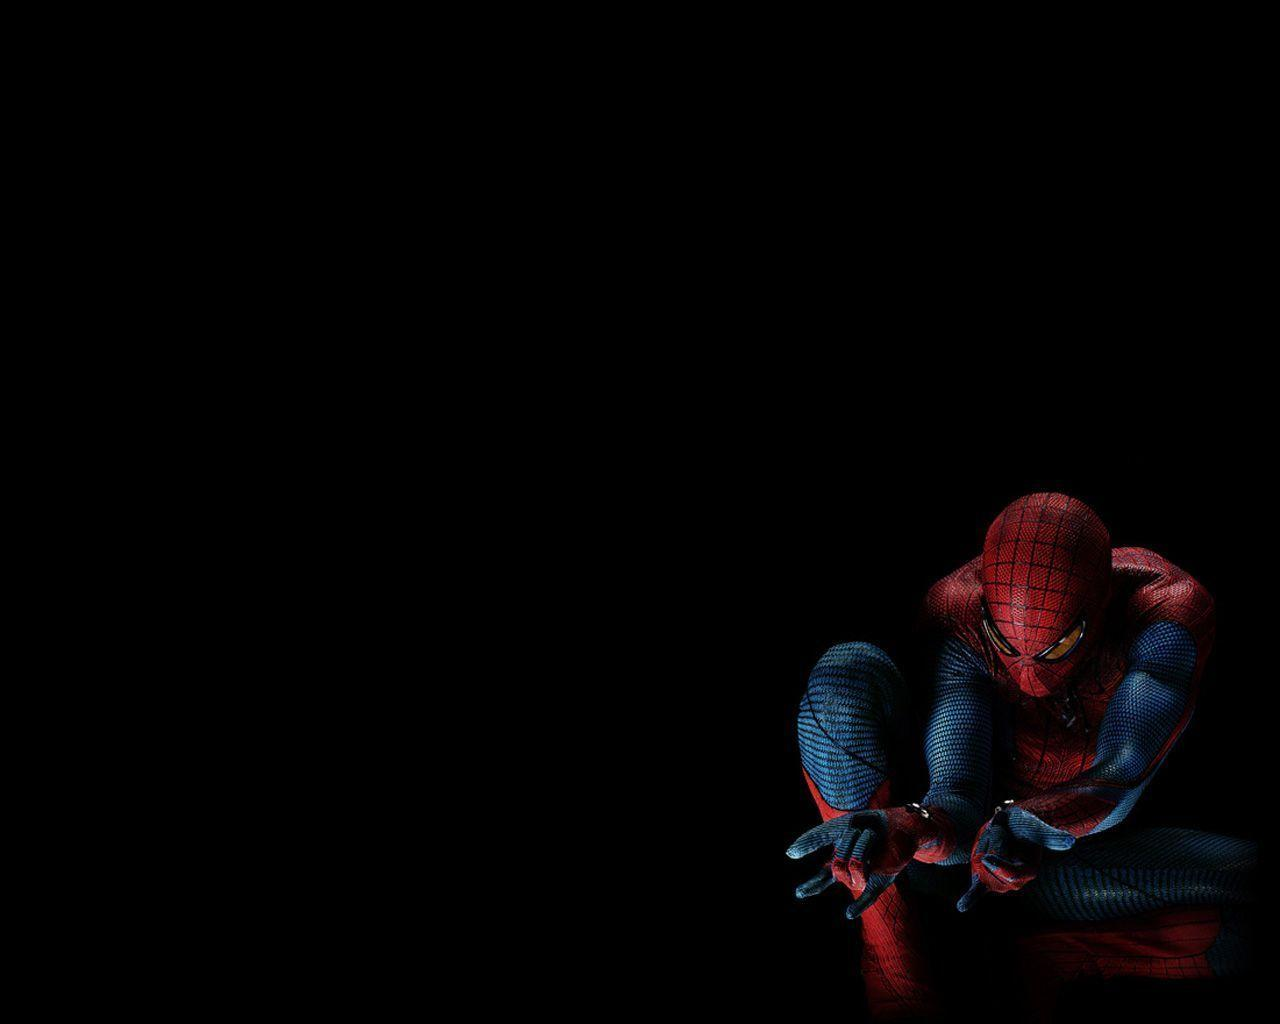 The Amazing Spiderman Hd Wallpaper Wallpaper | HDMarvelWallpaper